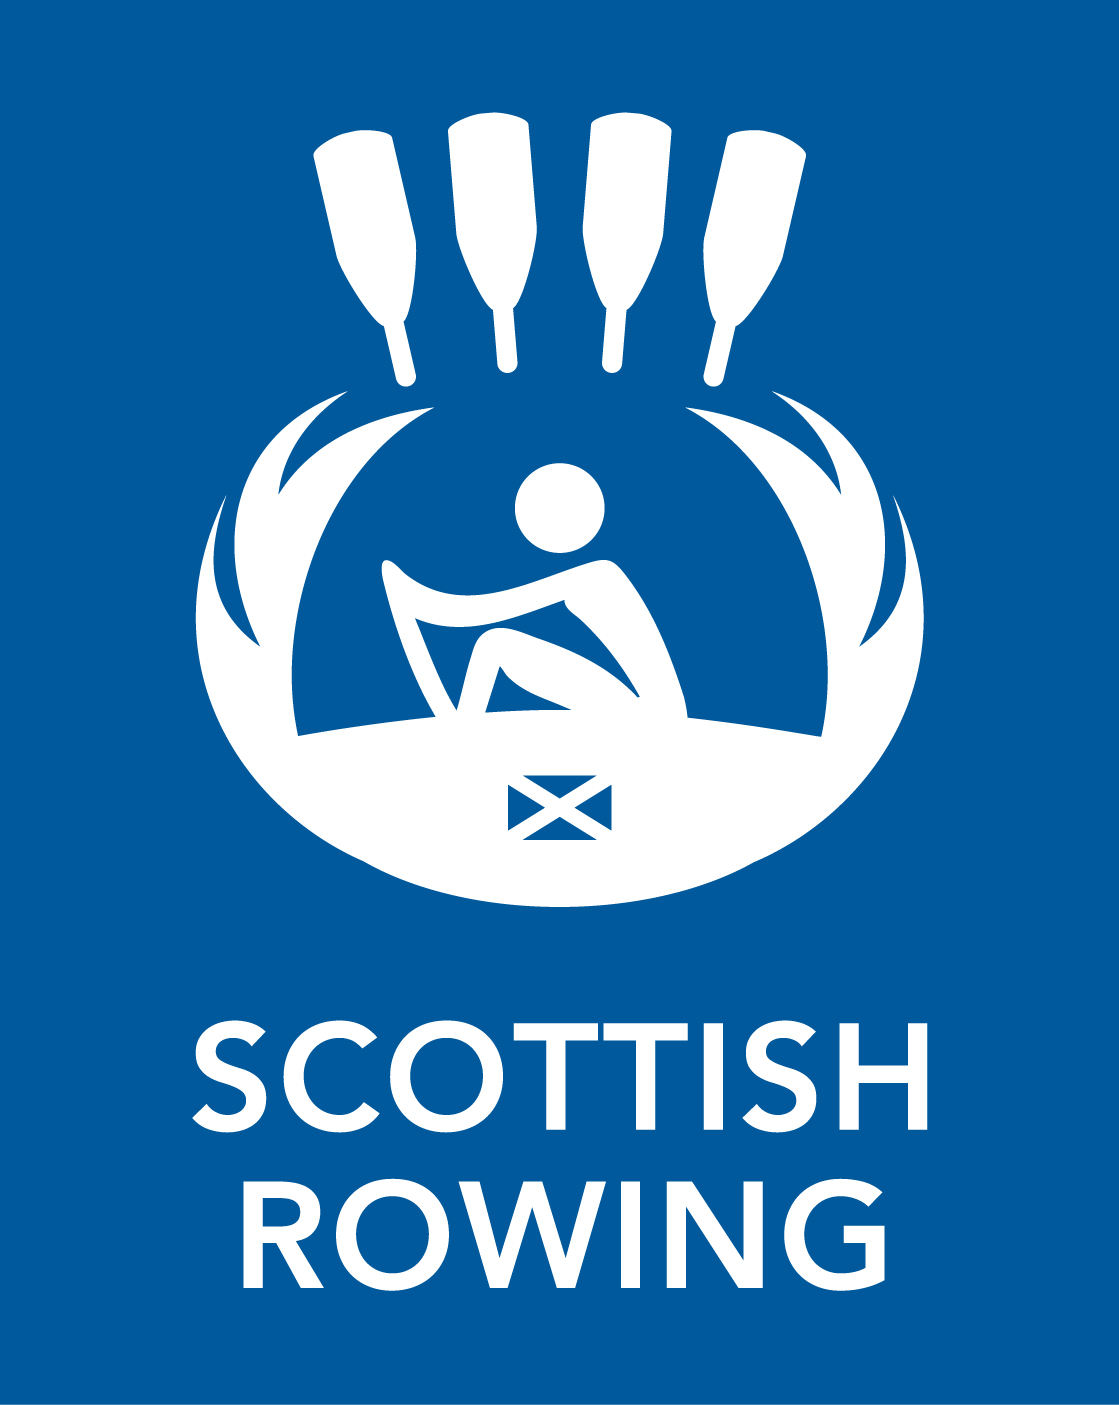 Scottish_rowing_logo